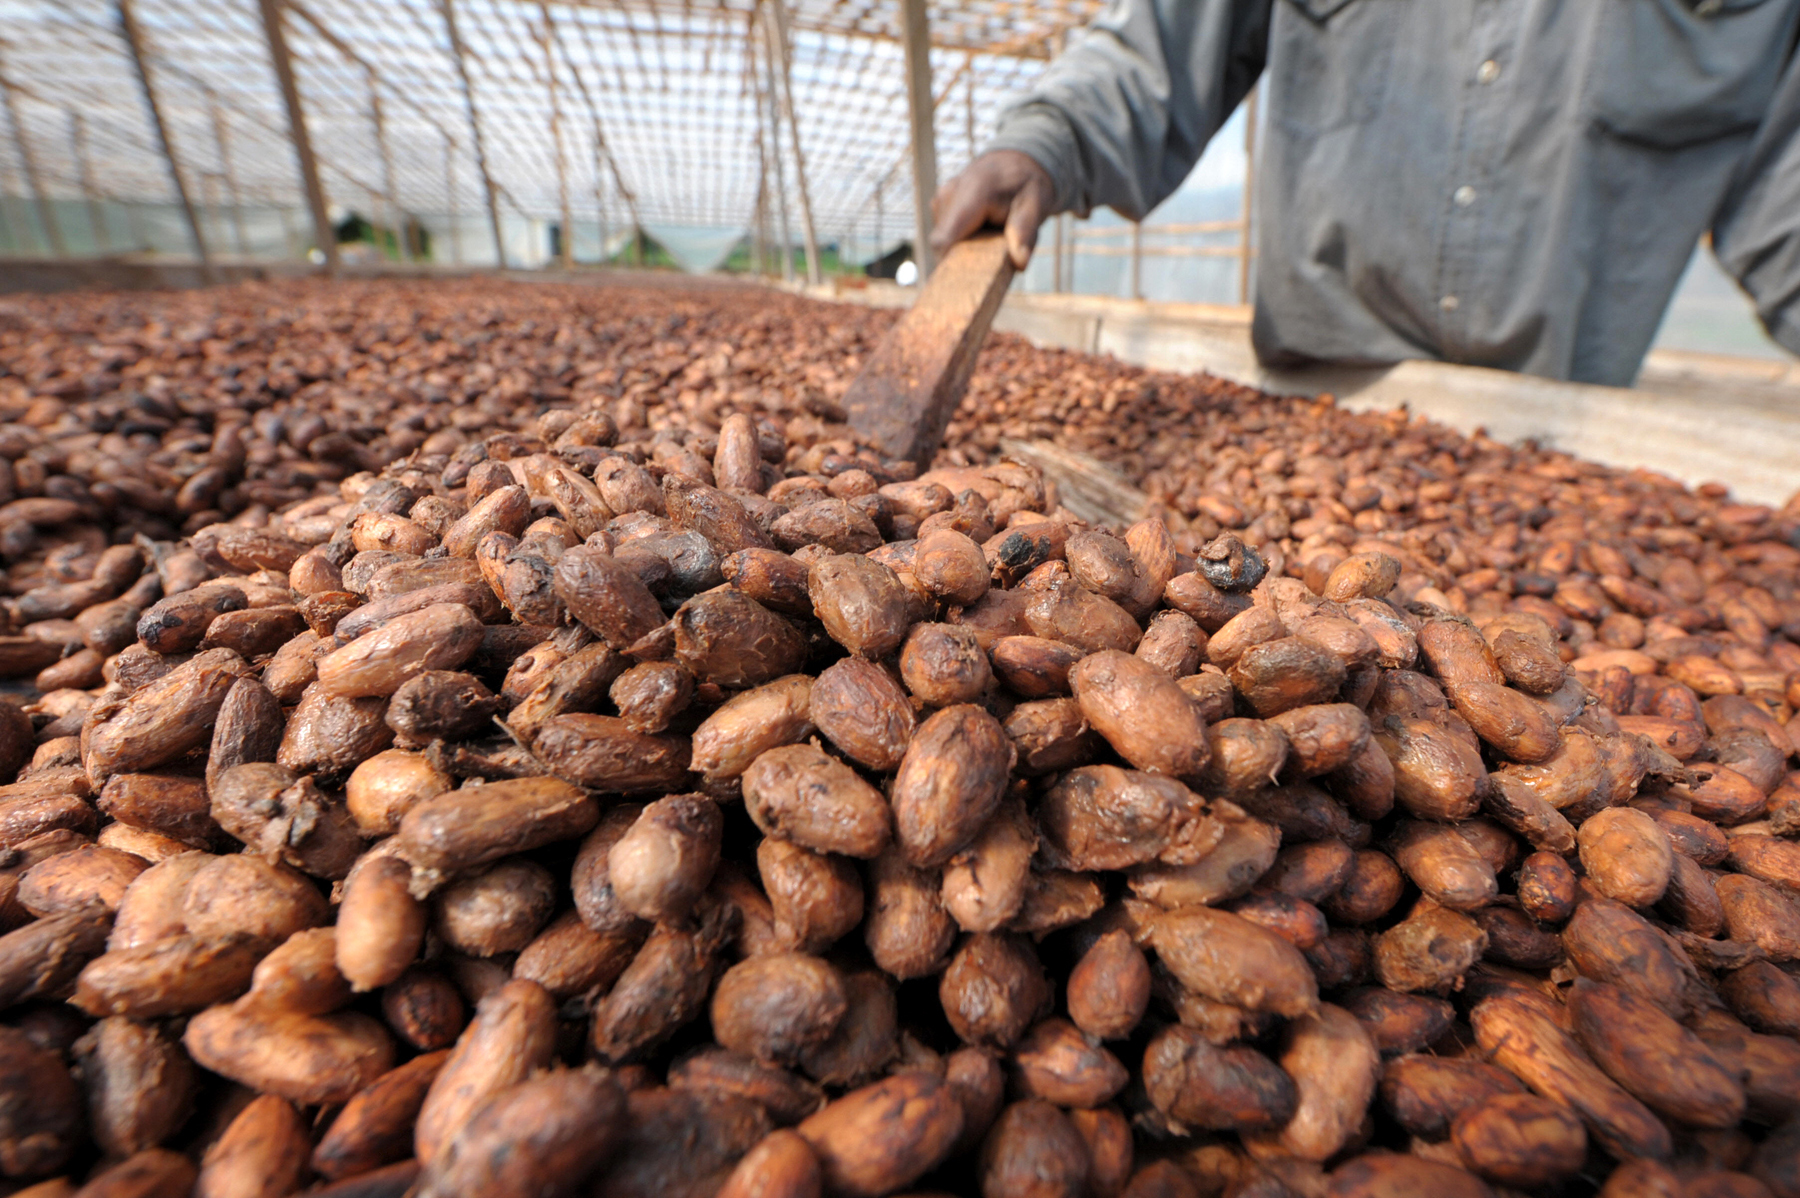 Production of cocoa beans in Ivory Coast 2012/2013-2016/2017